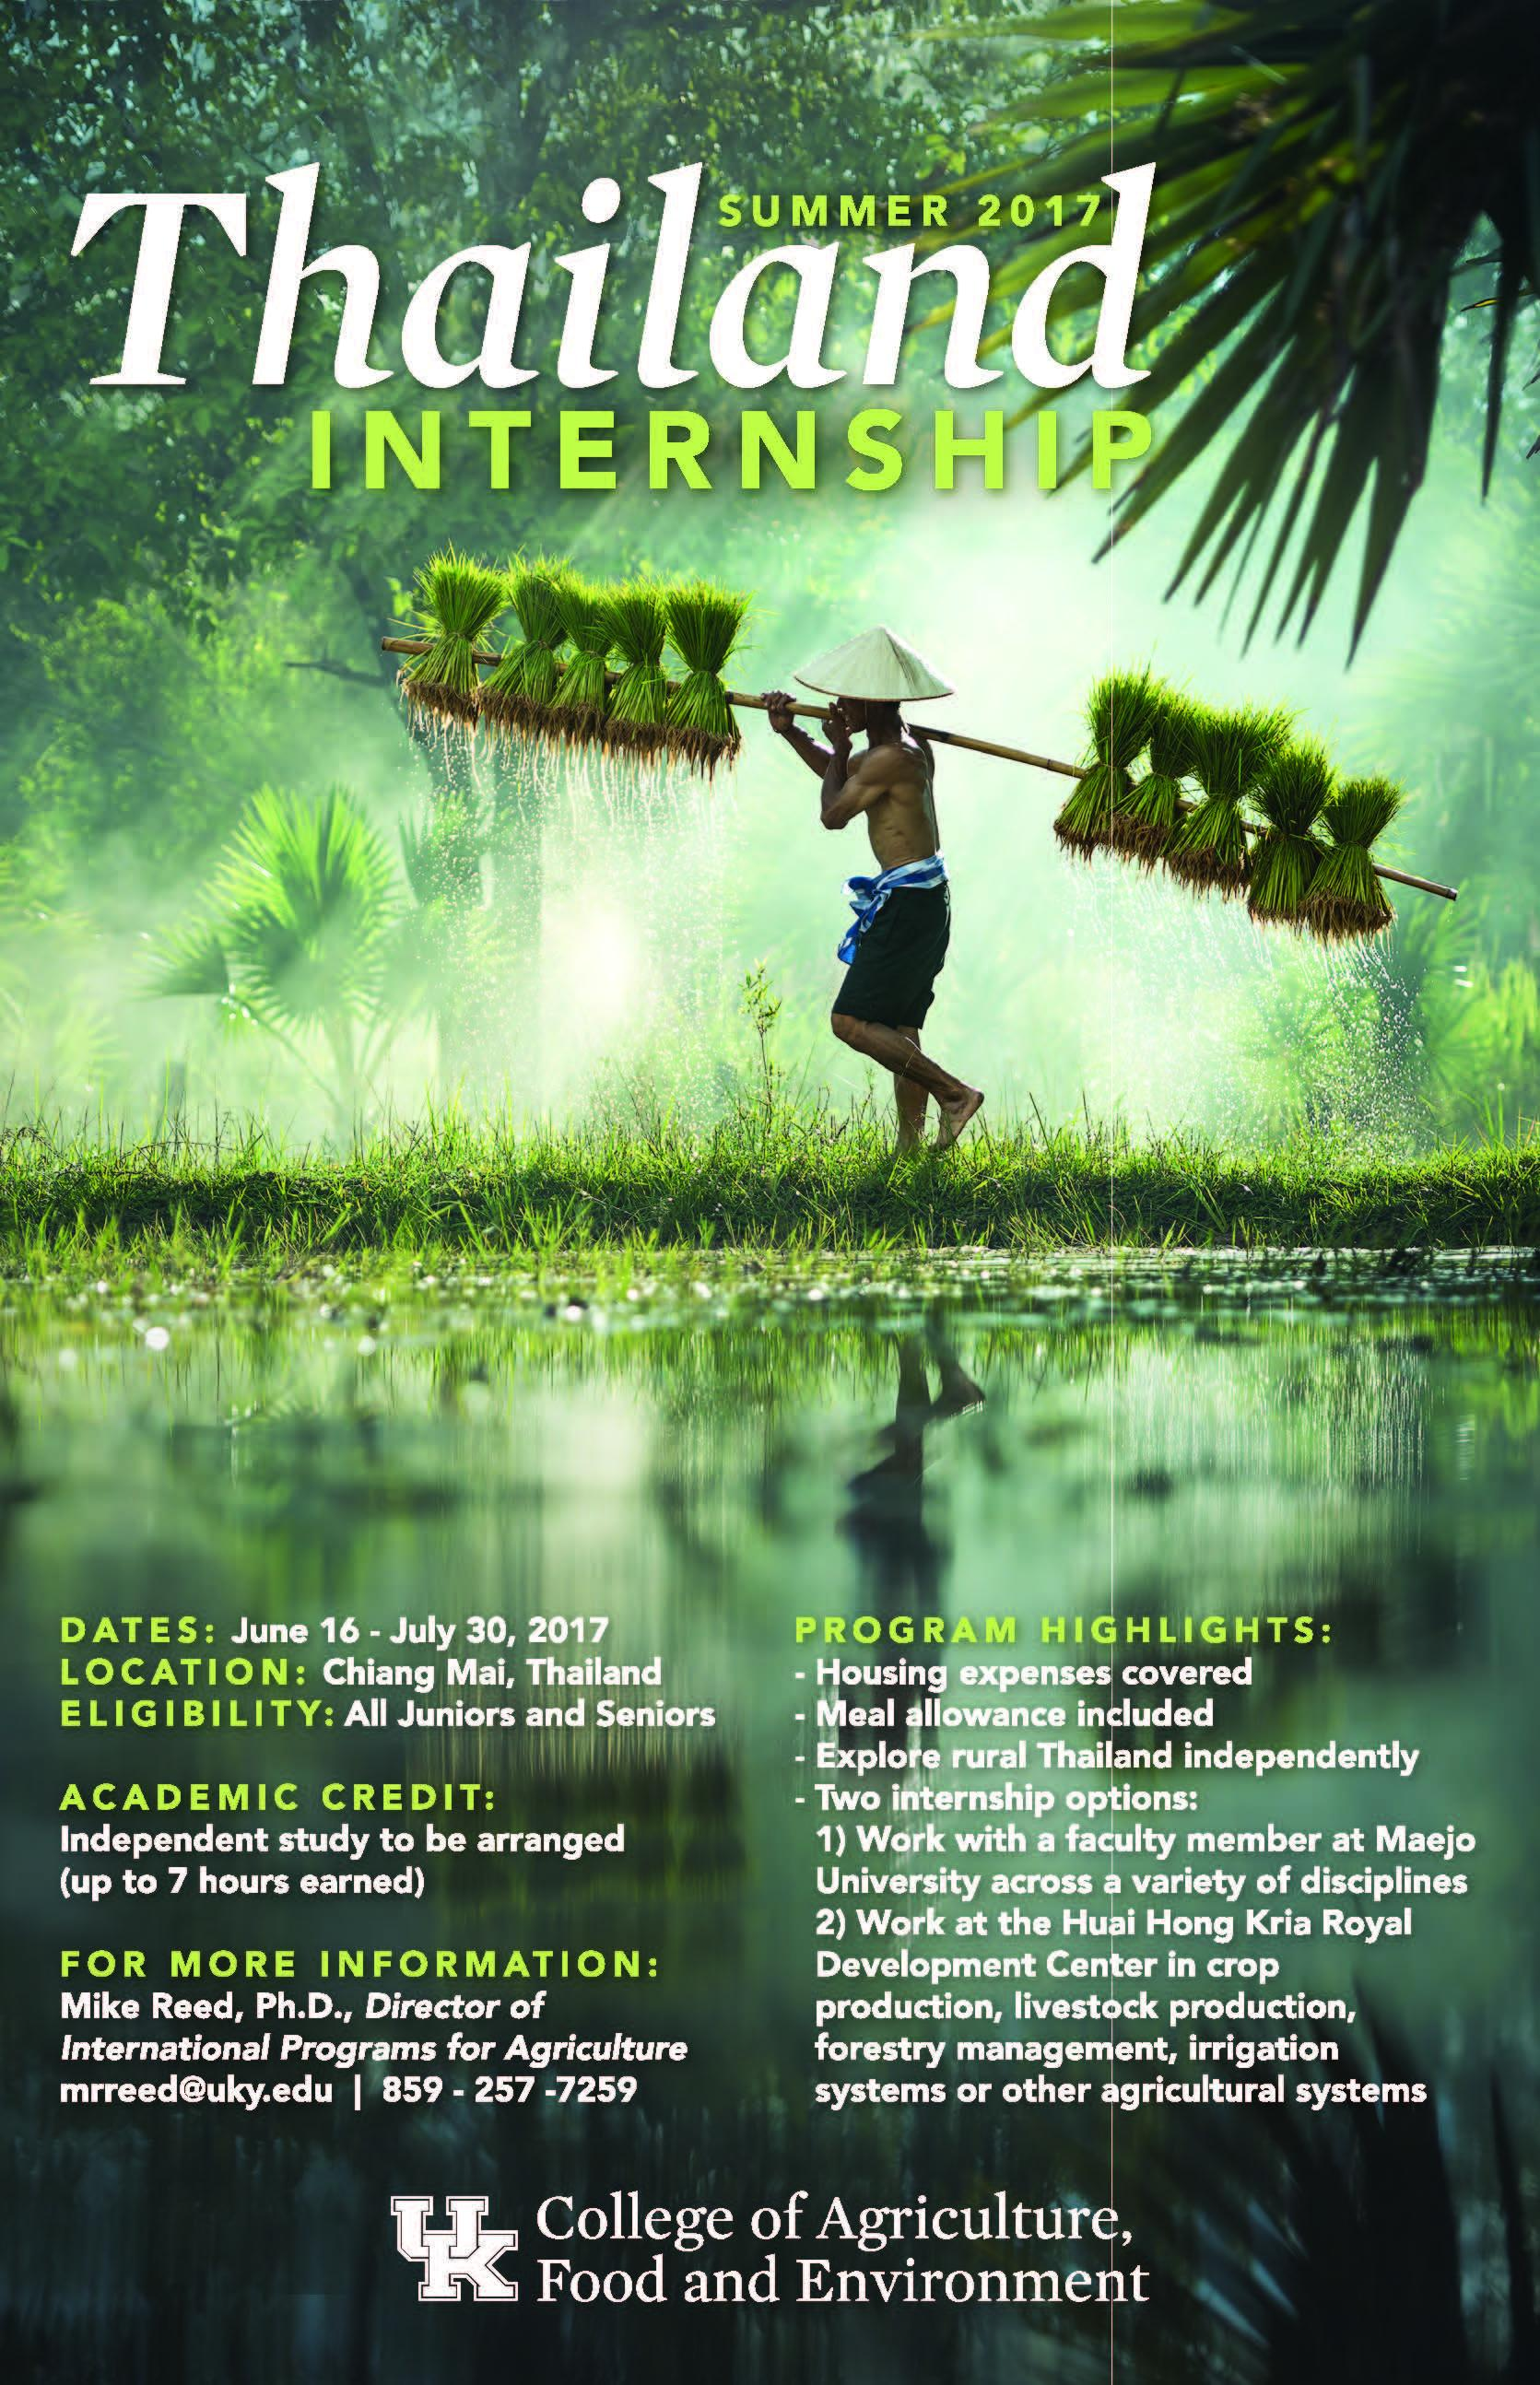 Thailand Summer 2017 Internship